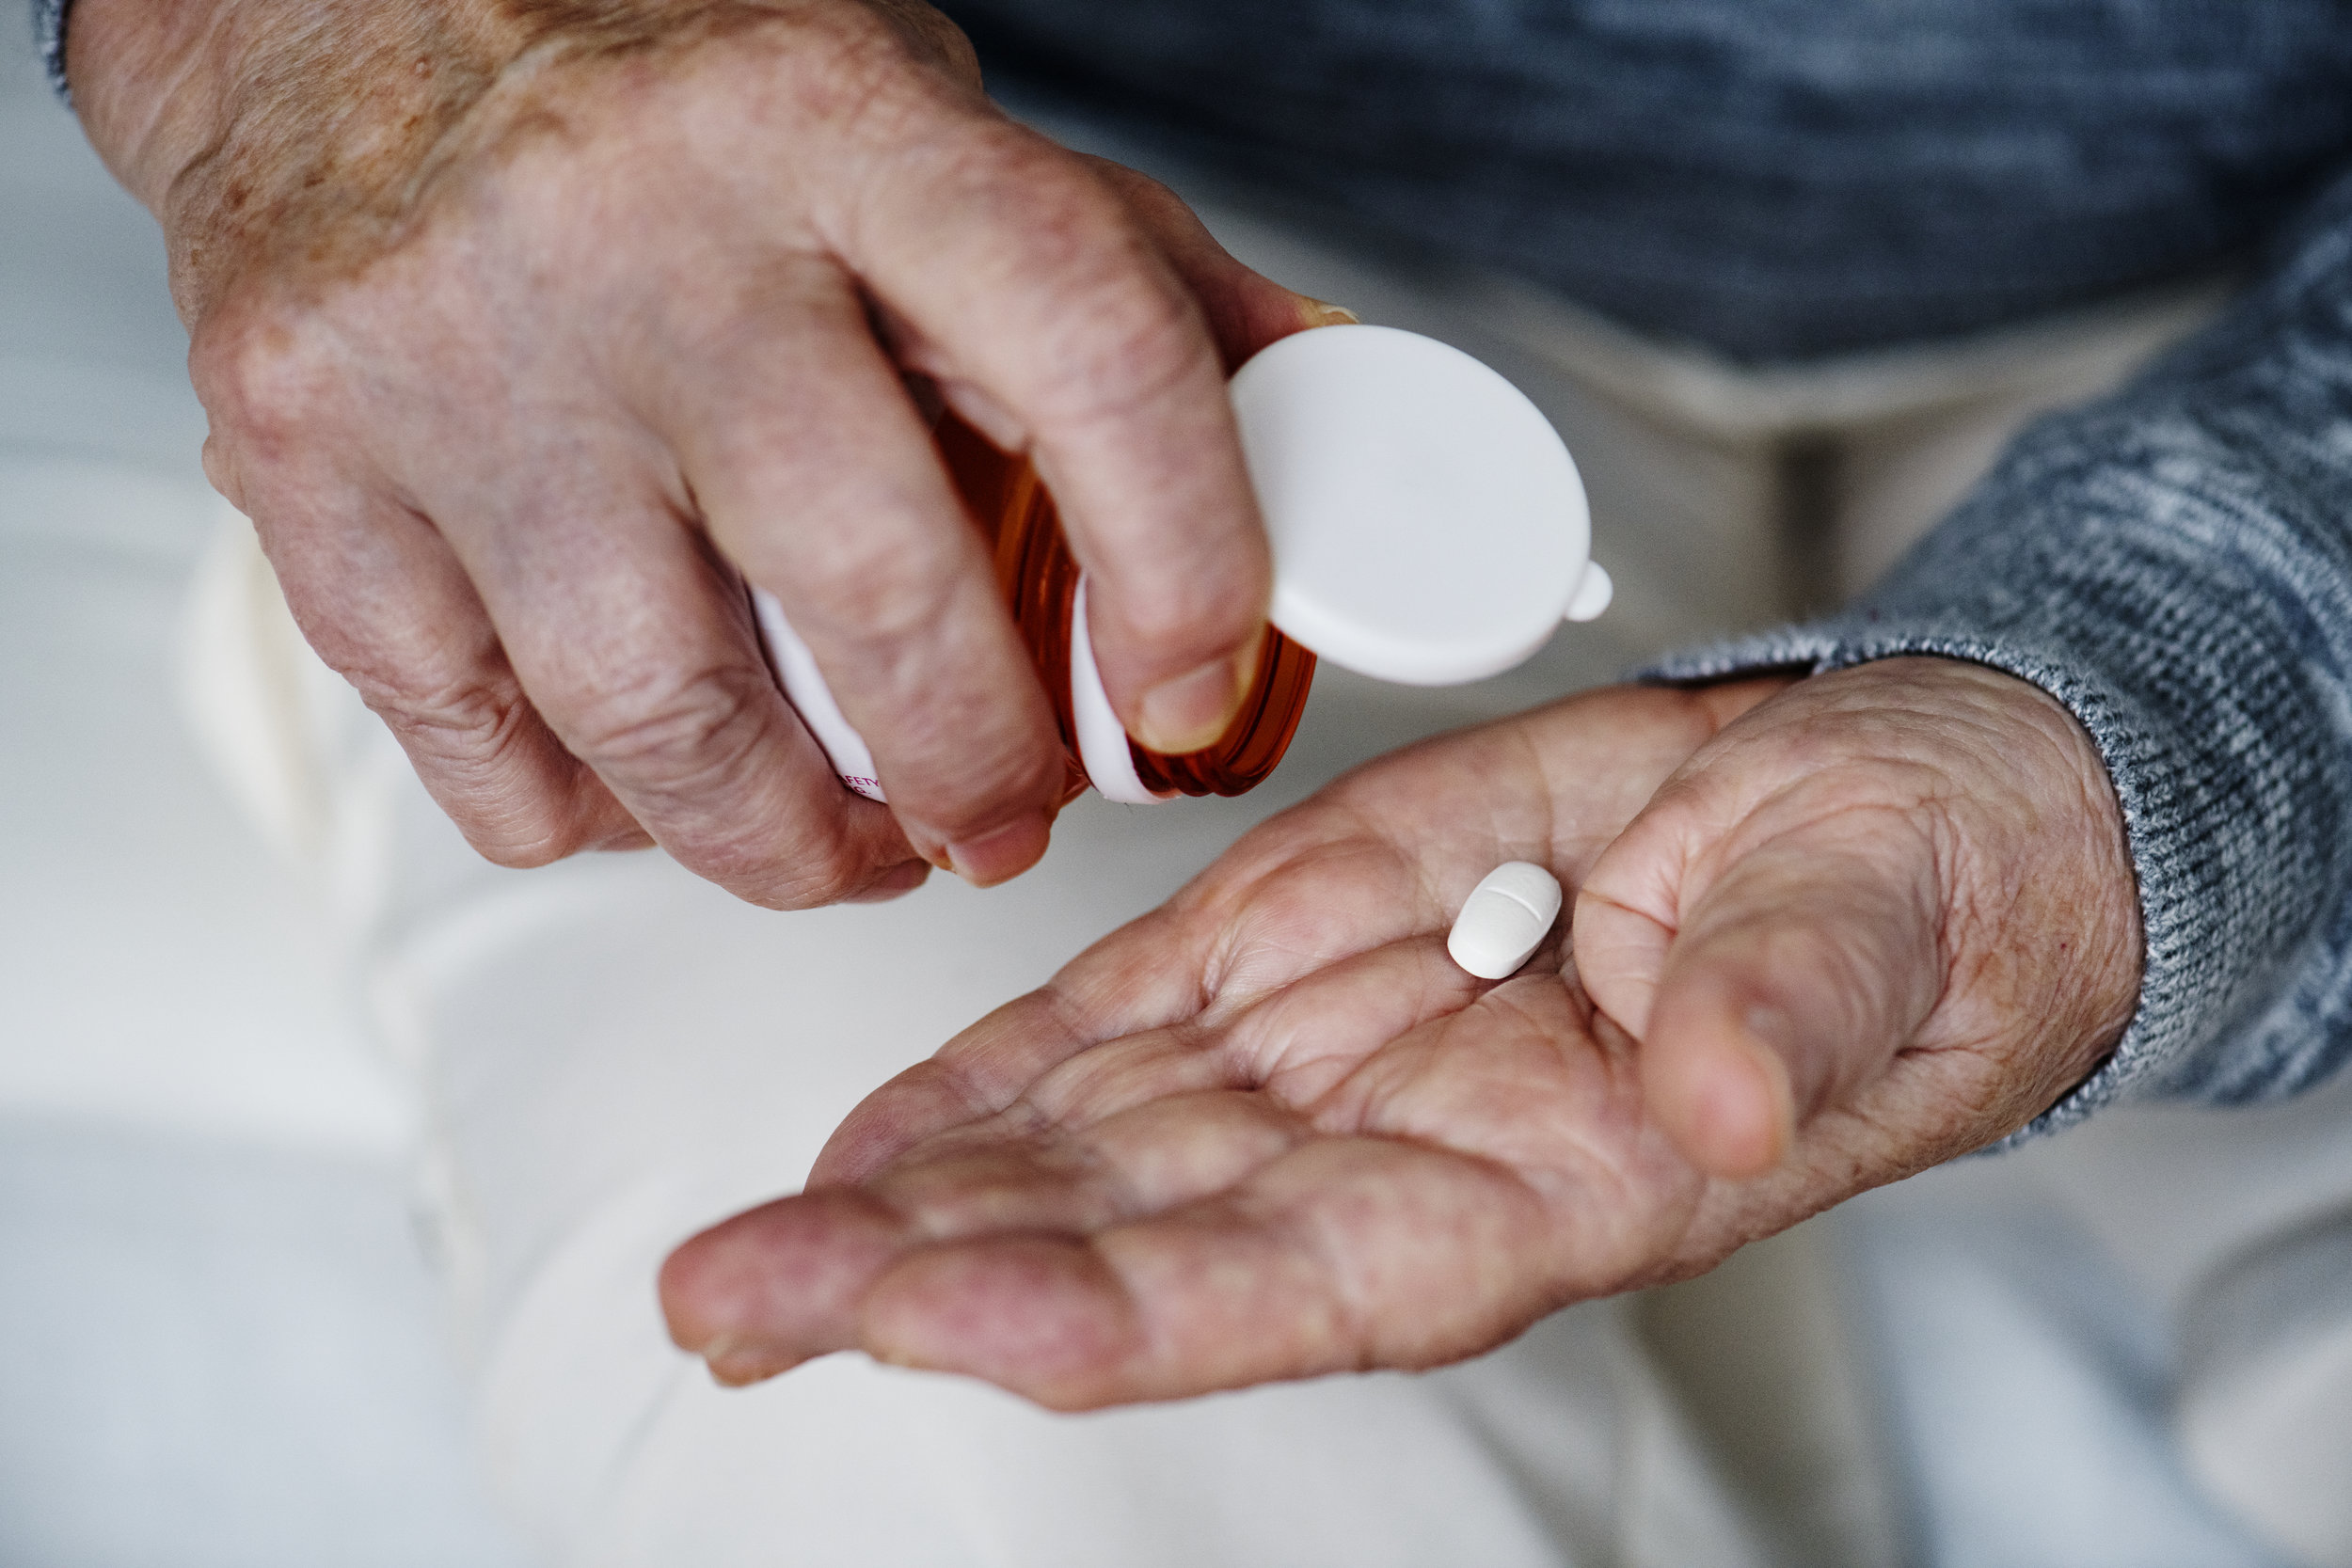 Do I need to come off my medication to see a Naturopath? - It is important to remain on all medications, and make Brooke aware in case of contraindications with complementary medicines. If you have any questions or concerns about the medications you are taking, please consult your prescribing doctor.